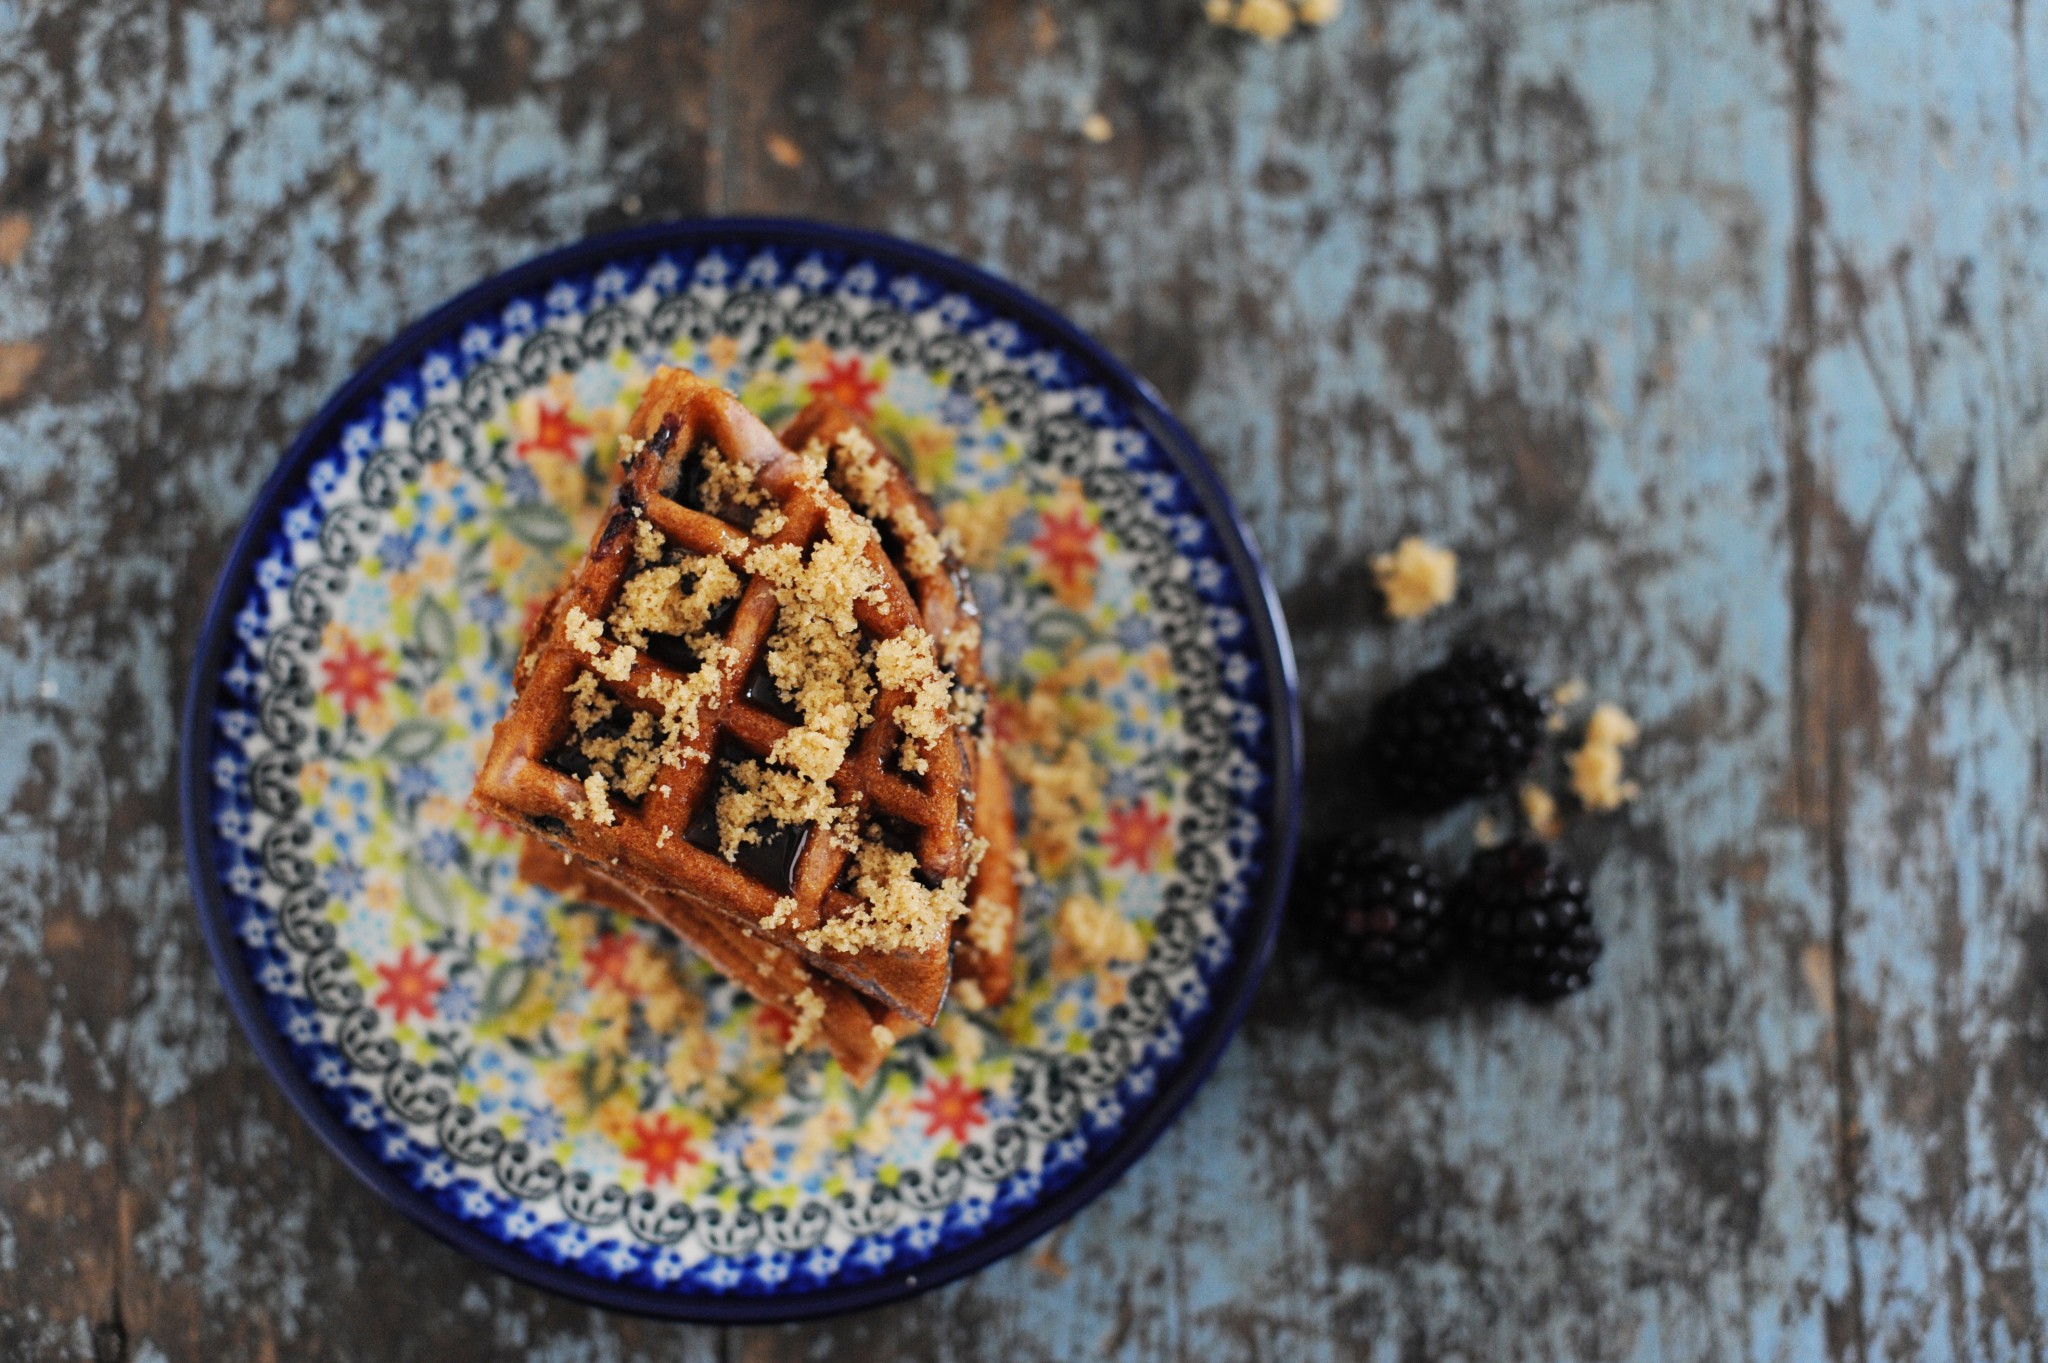 Delicious Blueberry Buckle Waffle Recipe